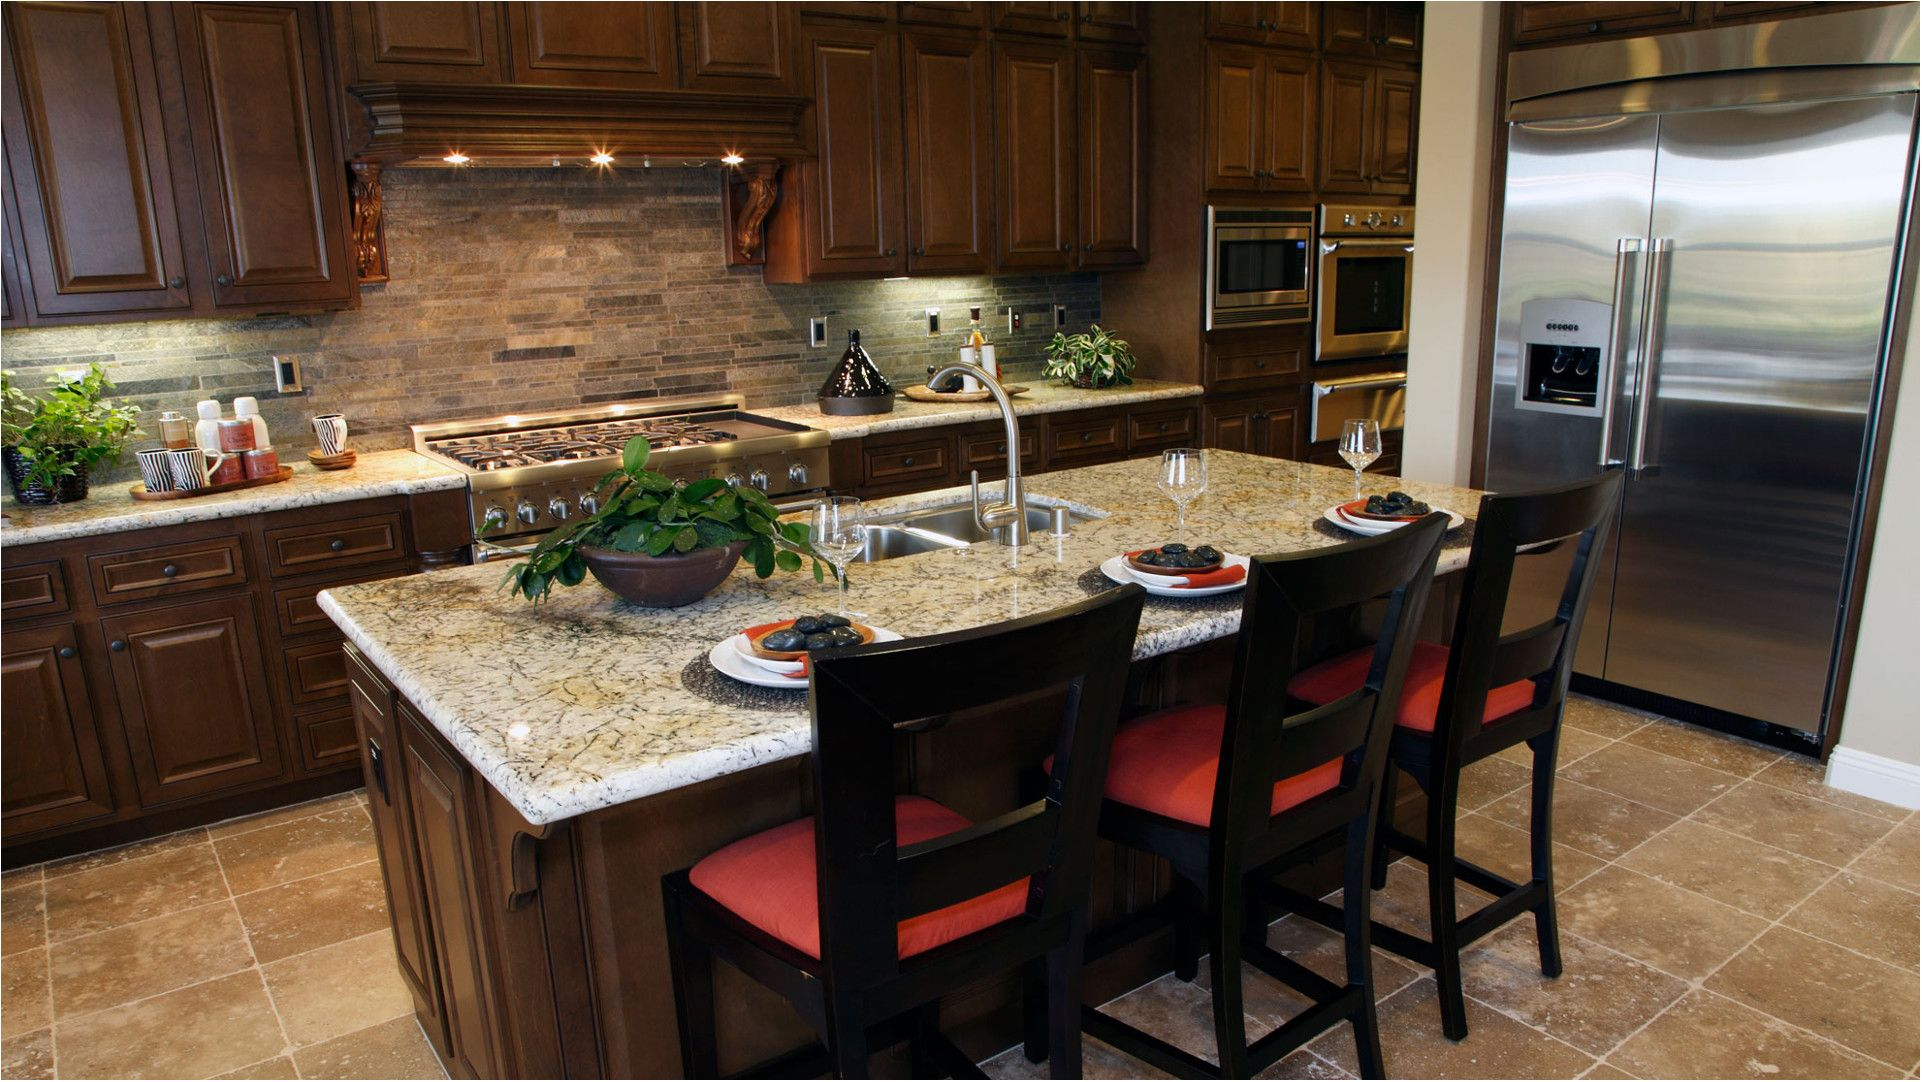 Thermador - The Reason For a Nice Kitchen Makeover!